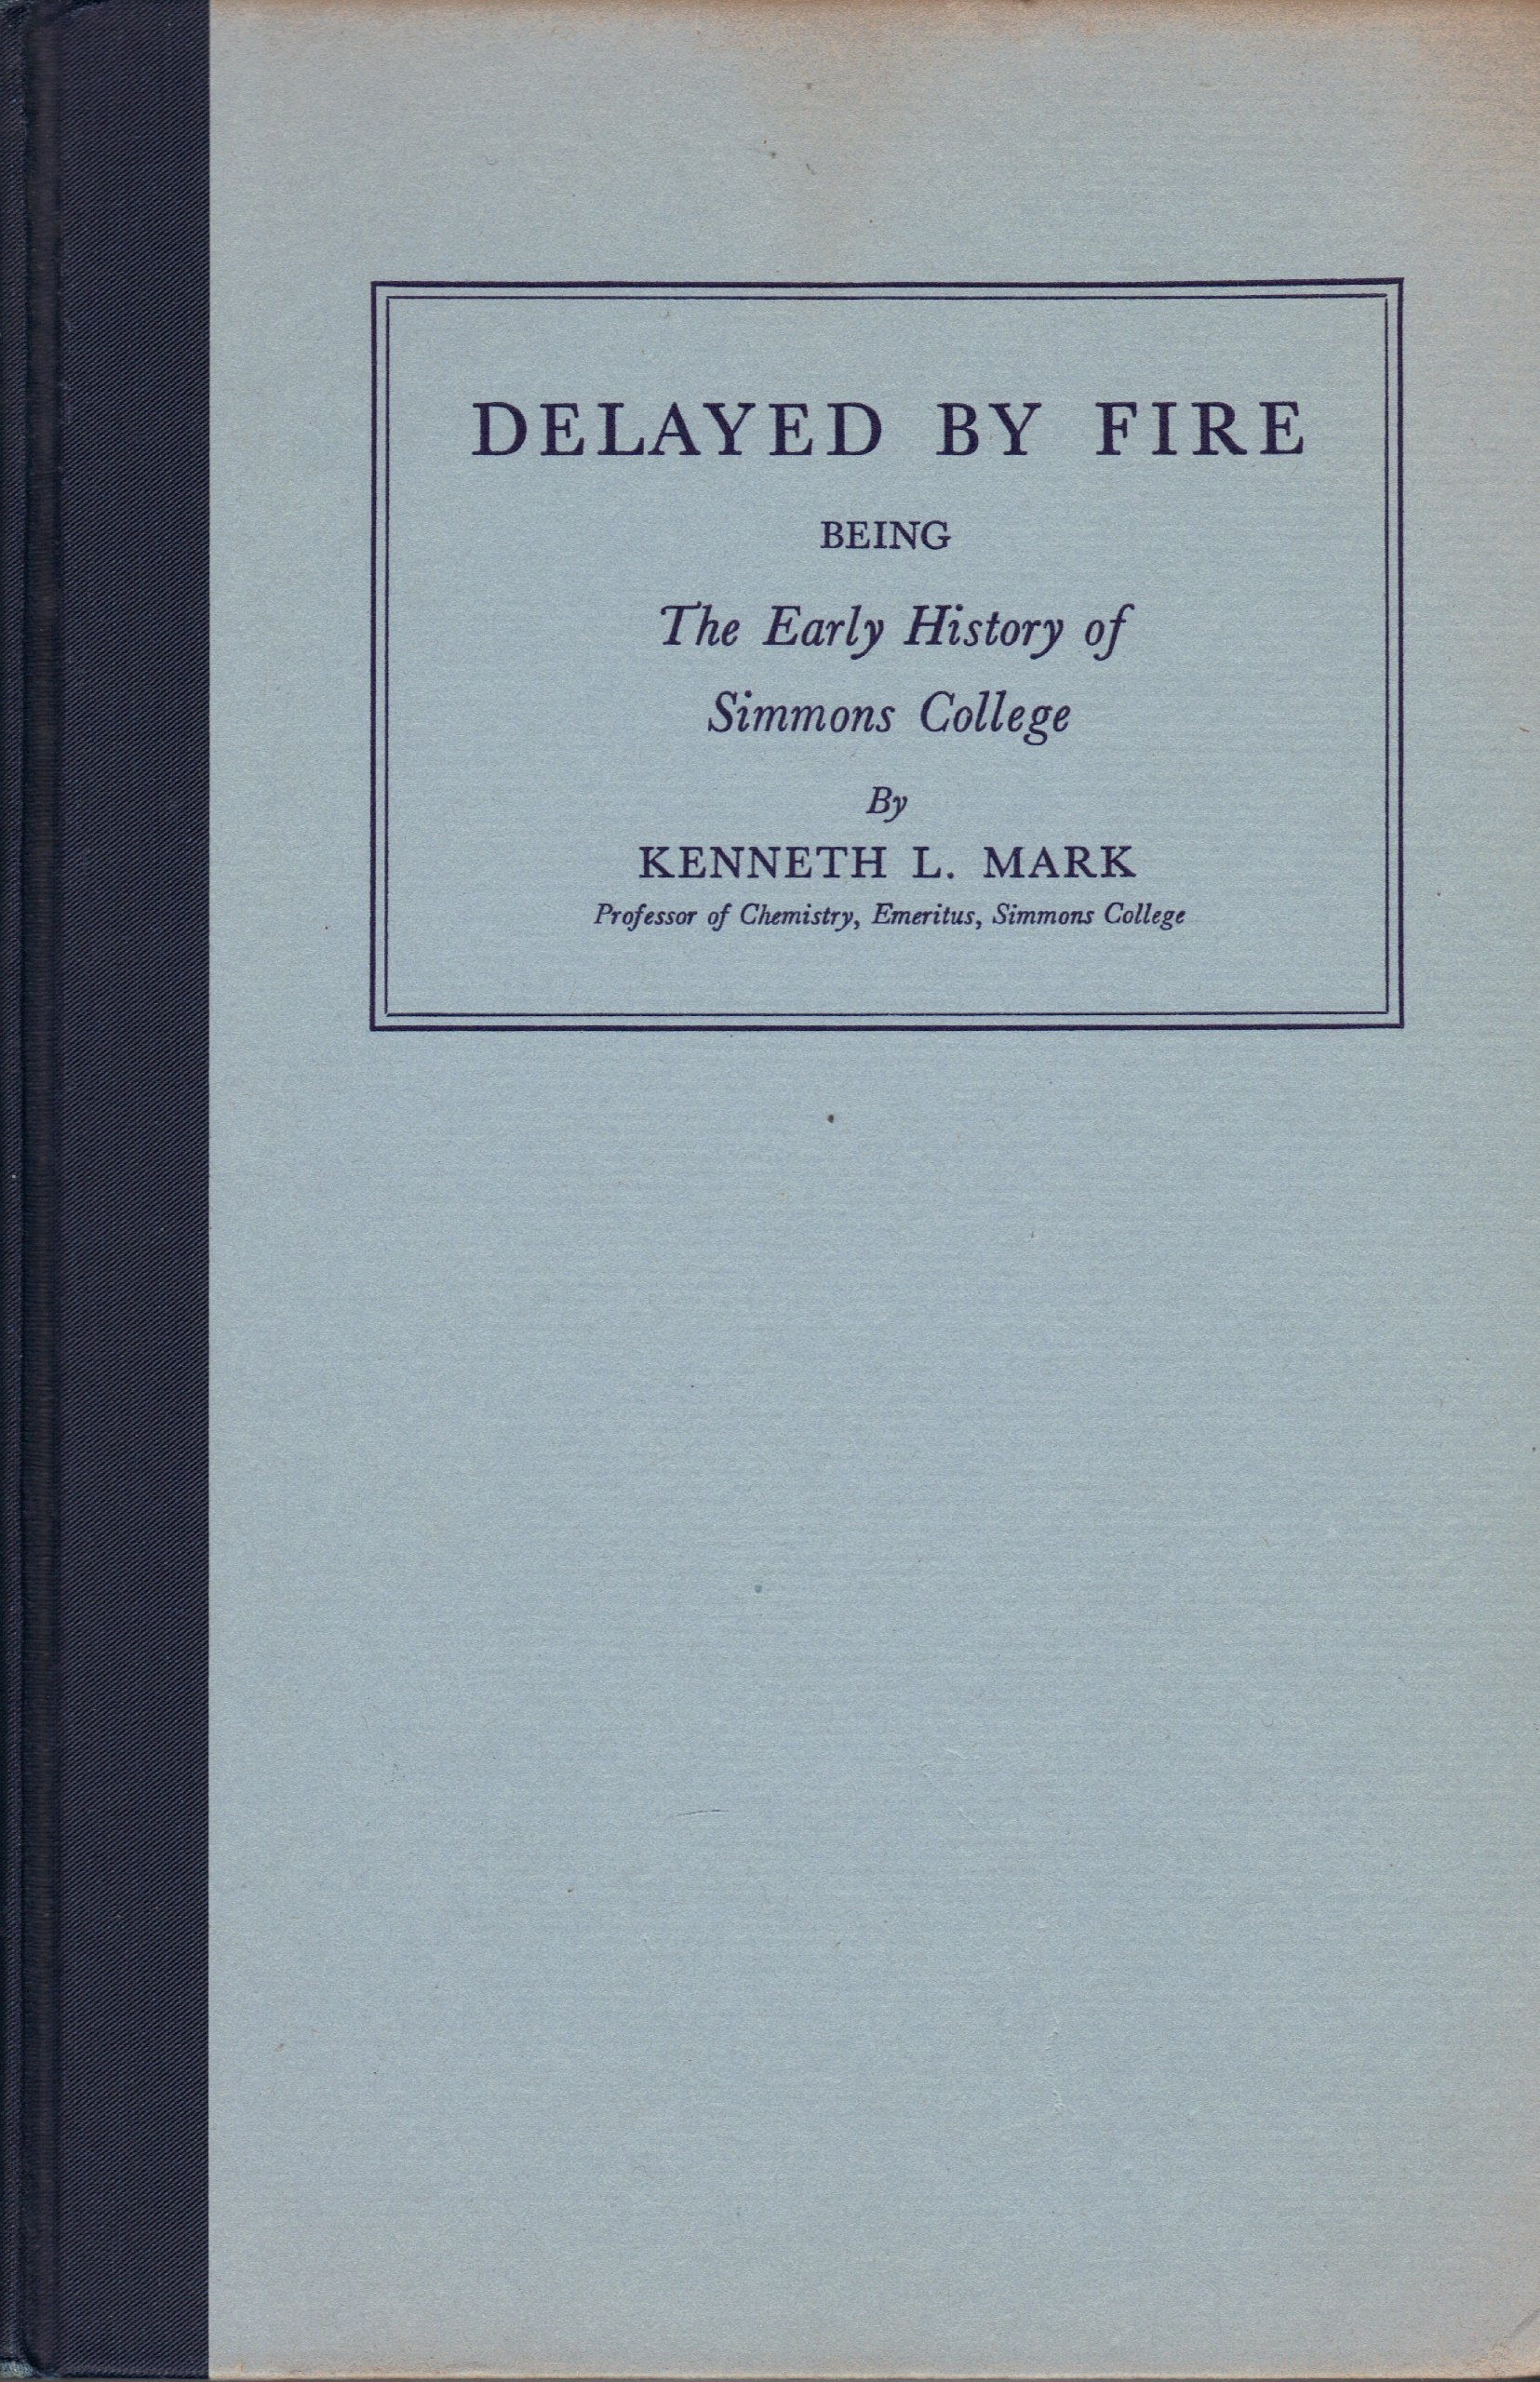 Delayed by fire: being the early history of Simmons College